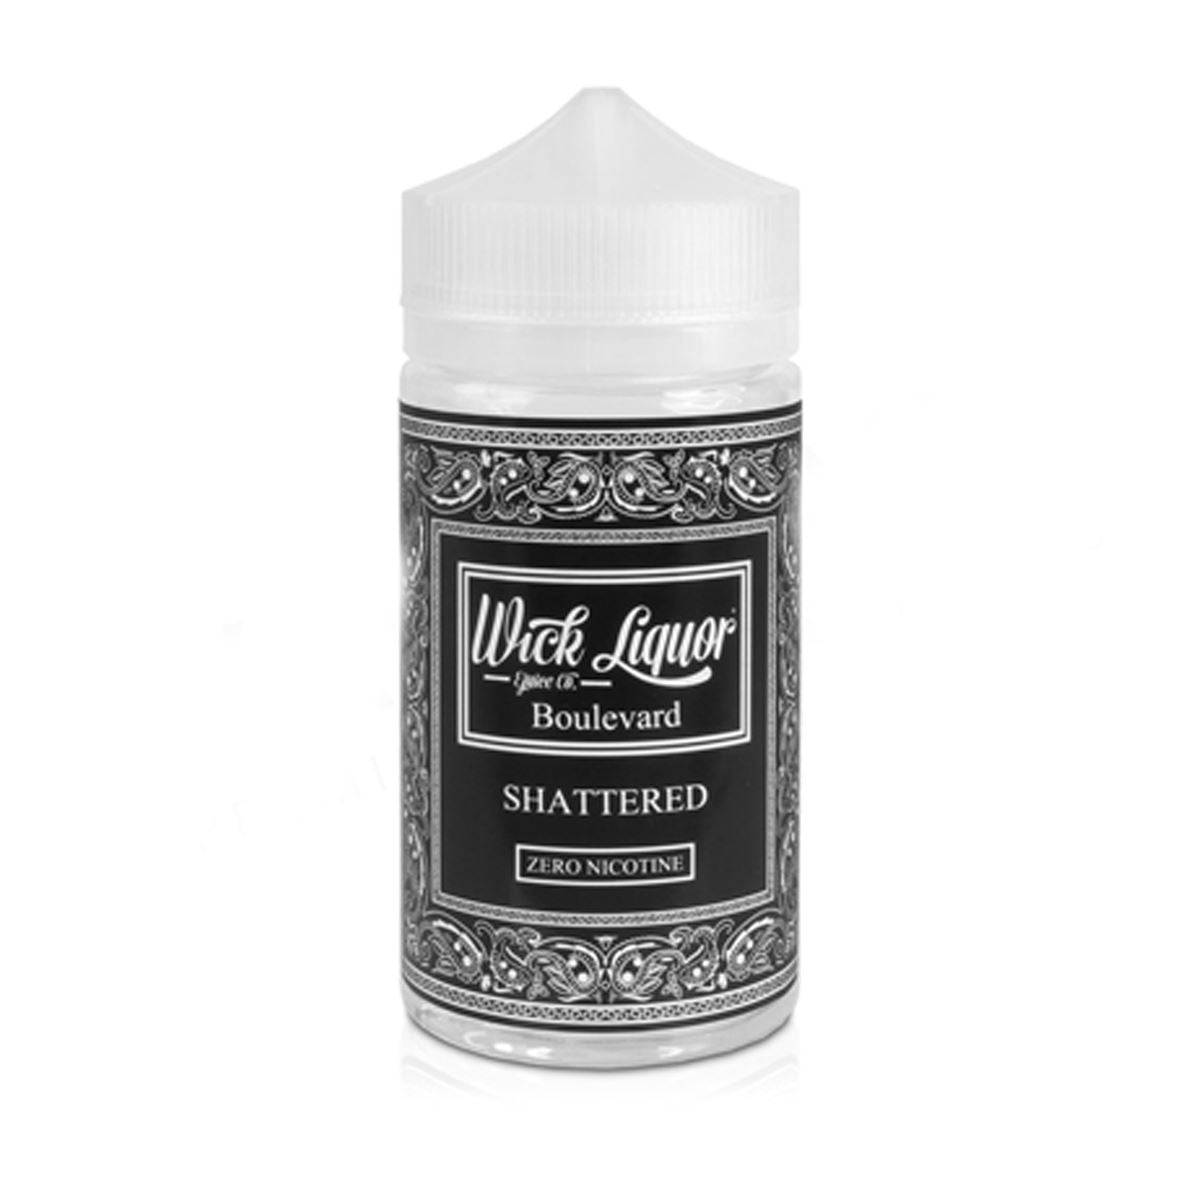 Boulevard Shattered 150ml Eliquid By Wick Liqour